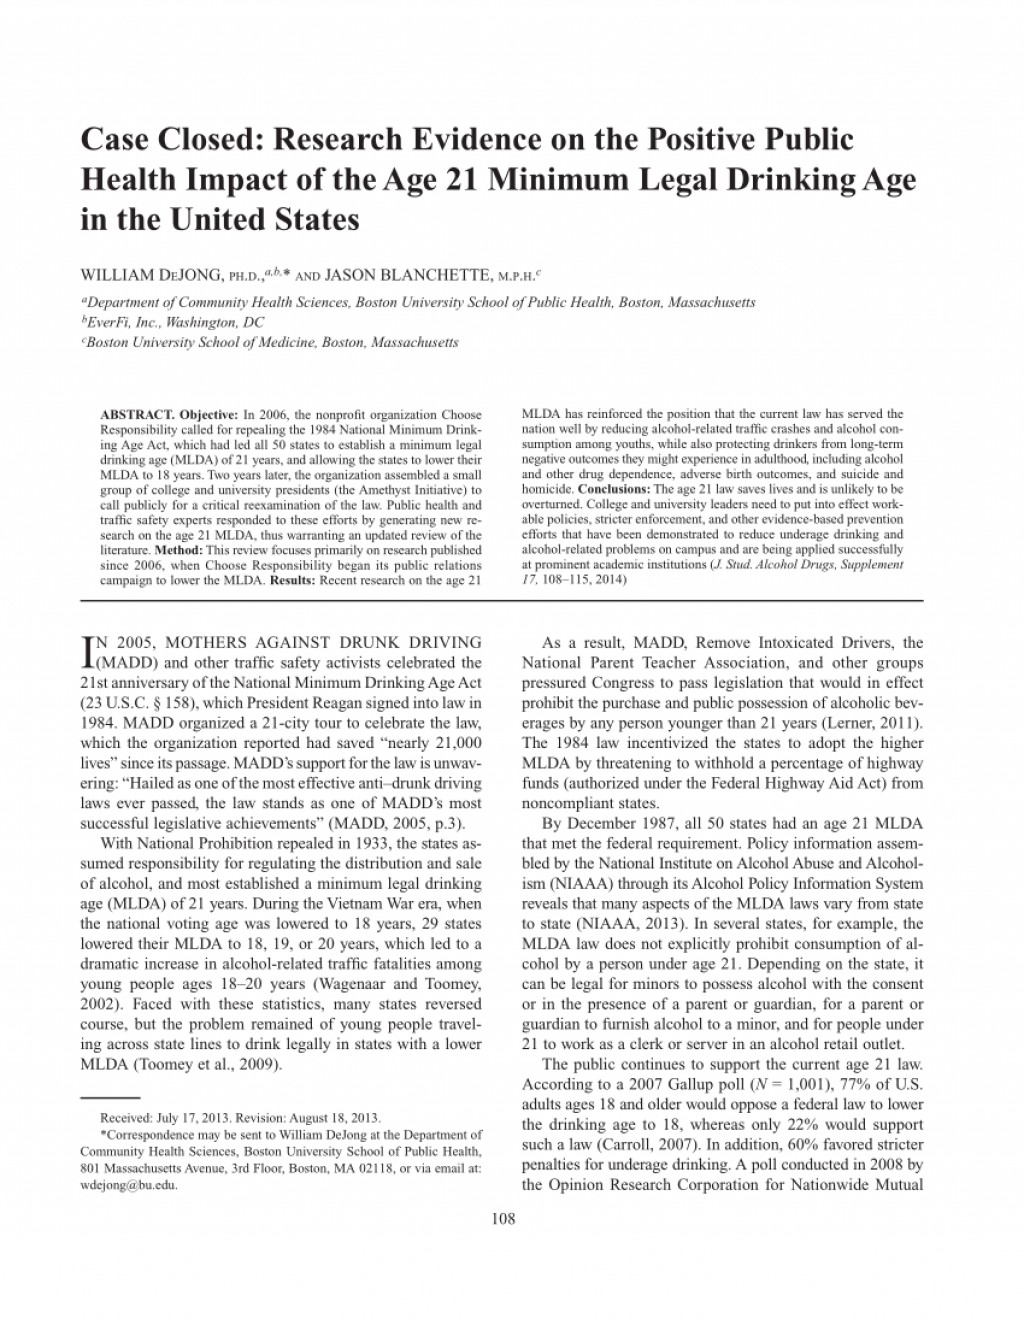 LOWER THE LEGAL DRINKING AGE ESSAY SAMPLE - My Essay Writer